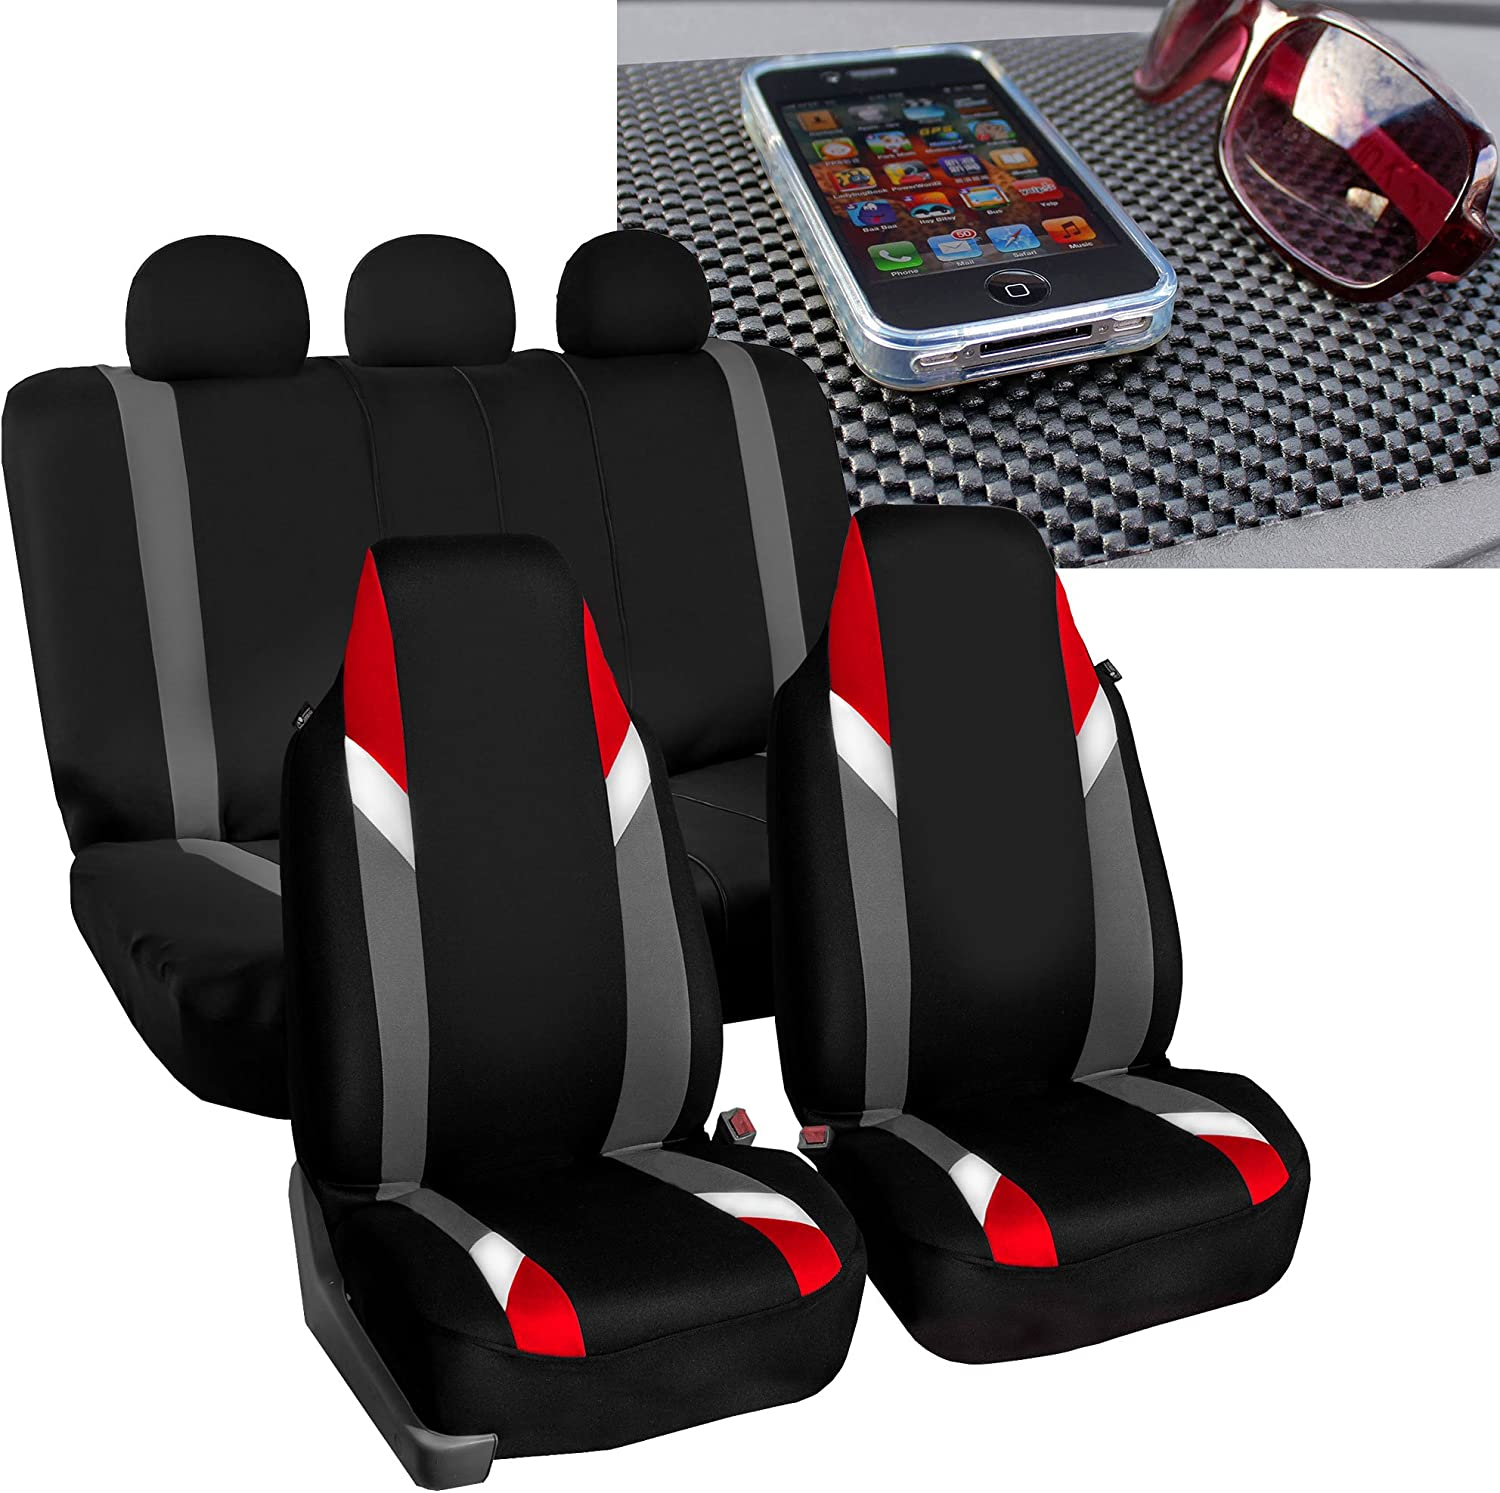 FH Group FB133115 Full Set Premium Modernistic Seat Covers Red/Black with FH1002 Non-Slip Dash Pad- Fit Most Car, Truck, SUV, or Van